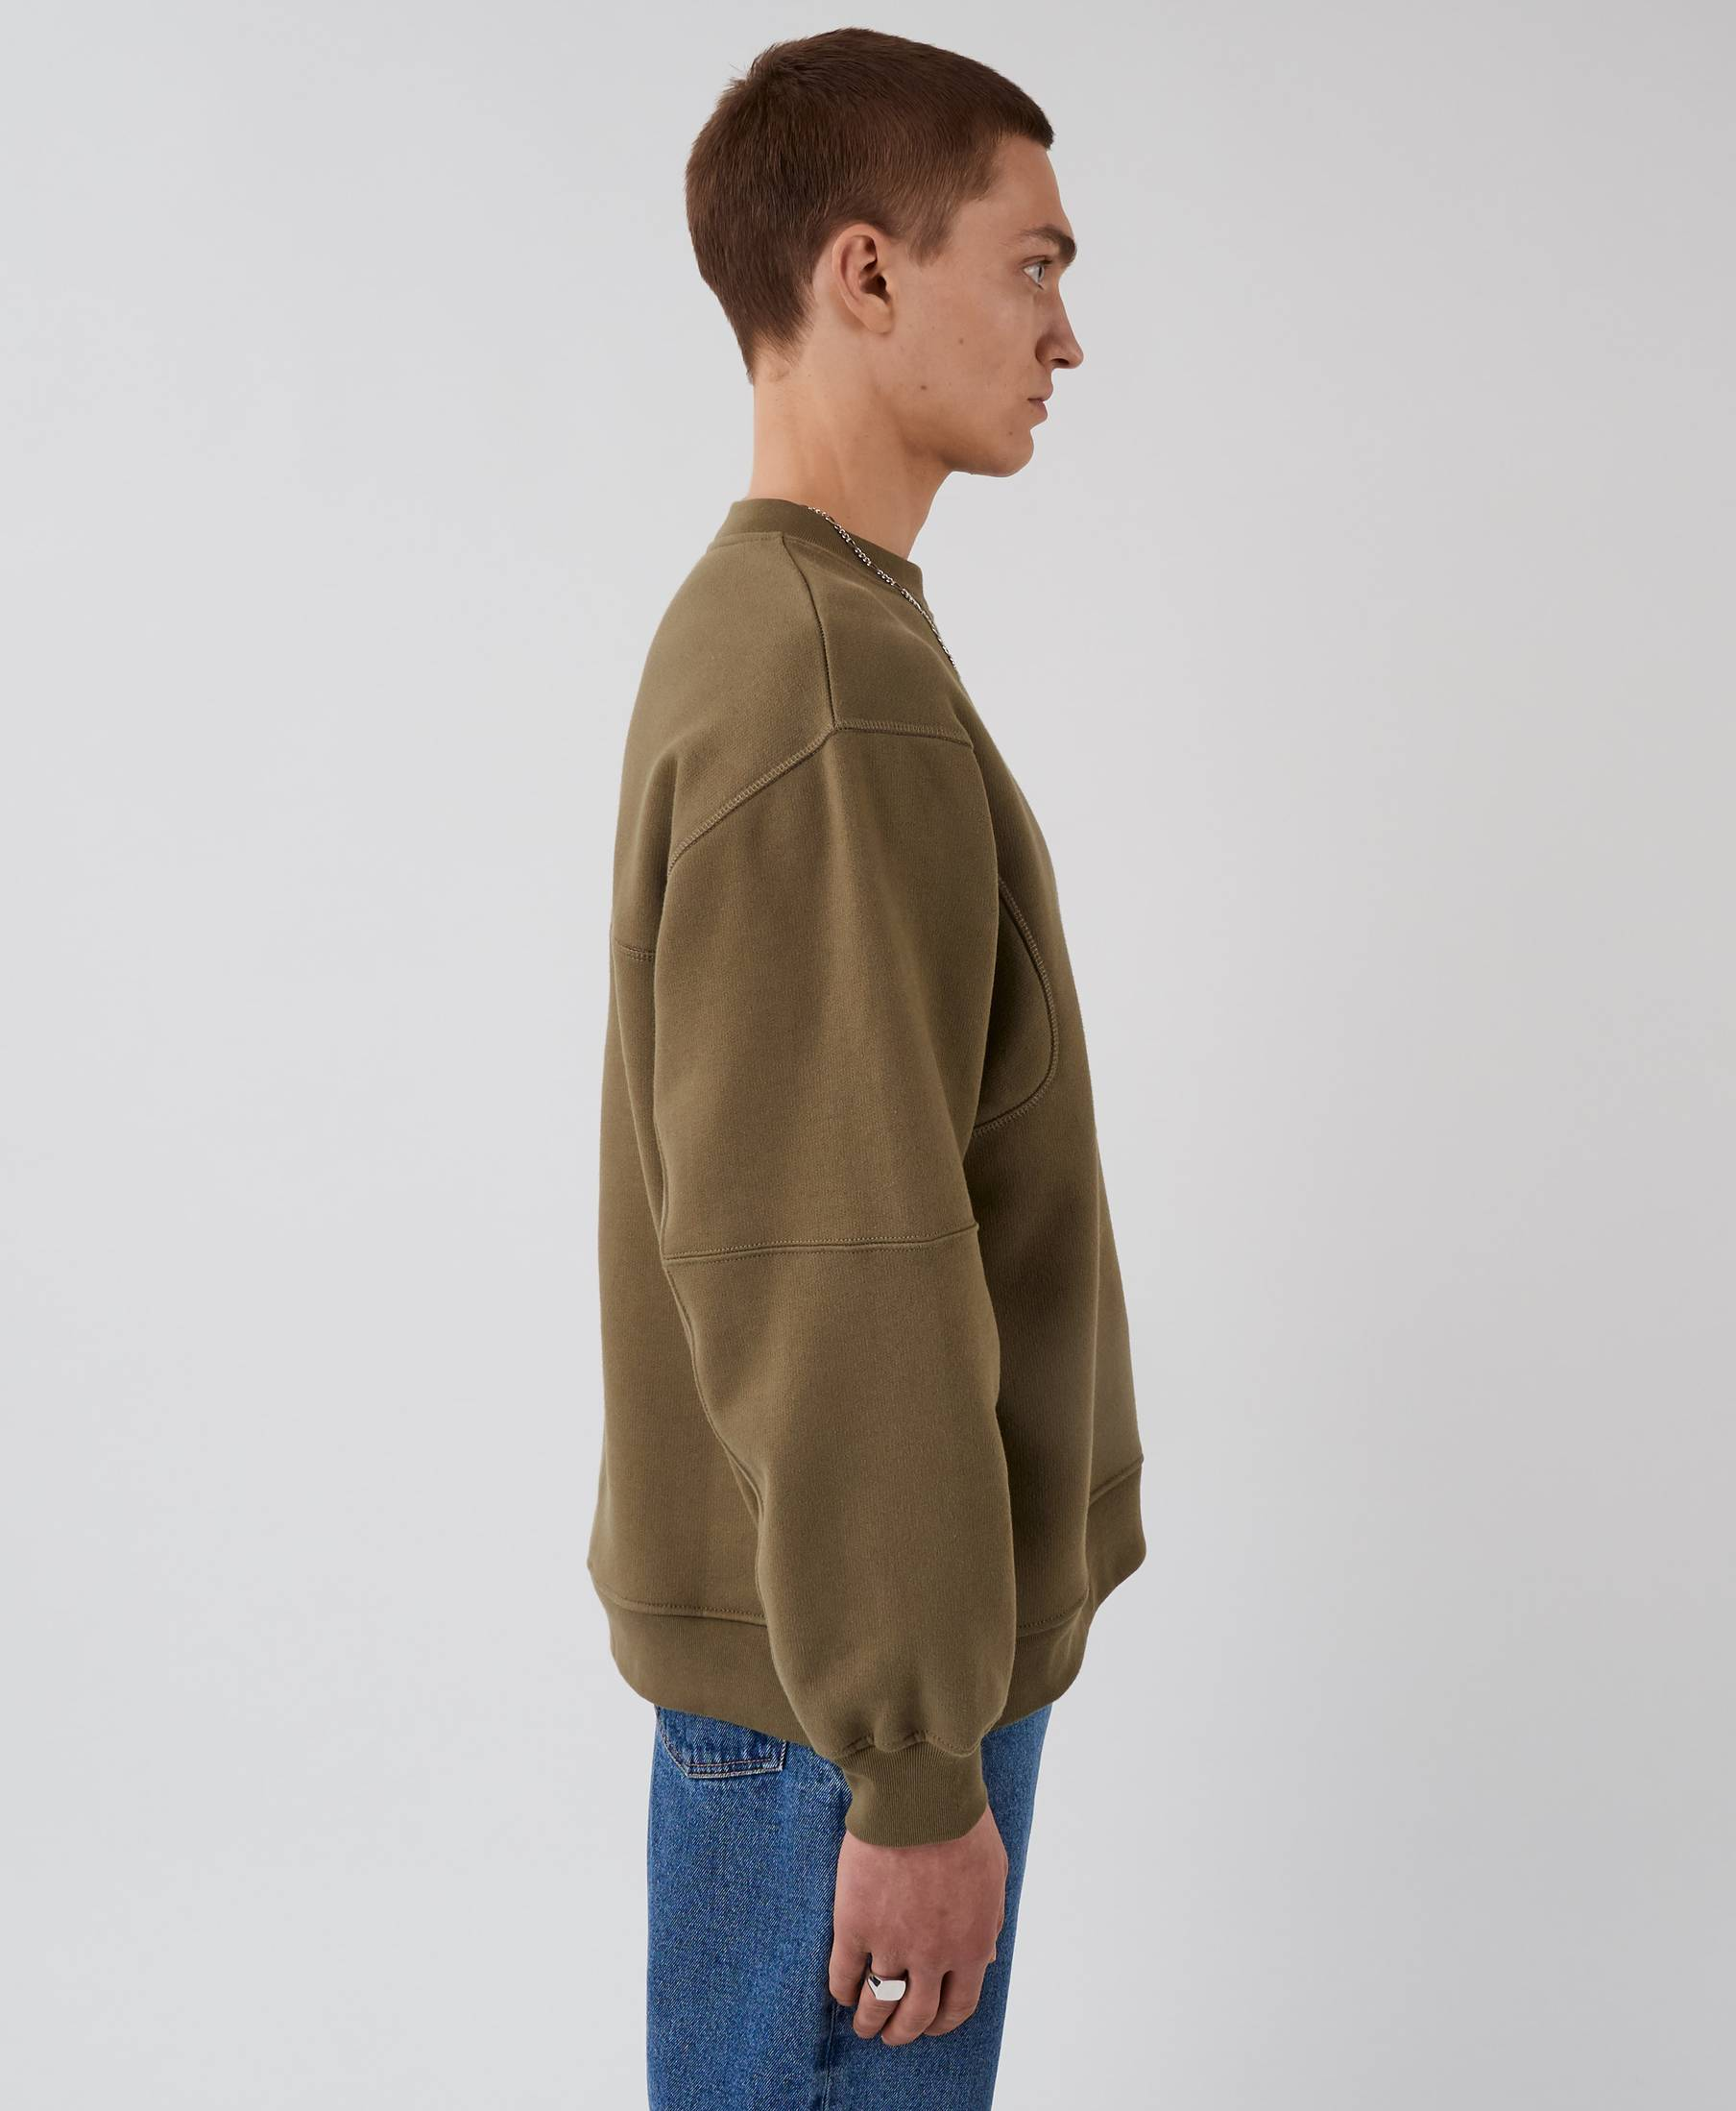 The Waves Sweater Olive